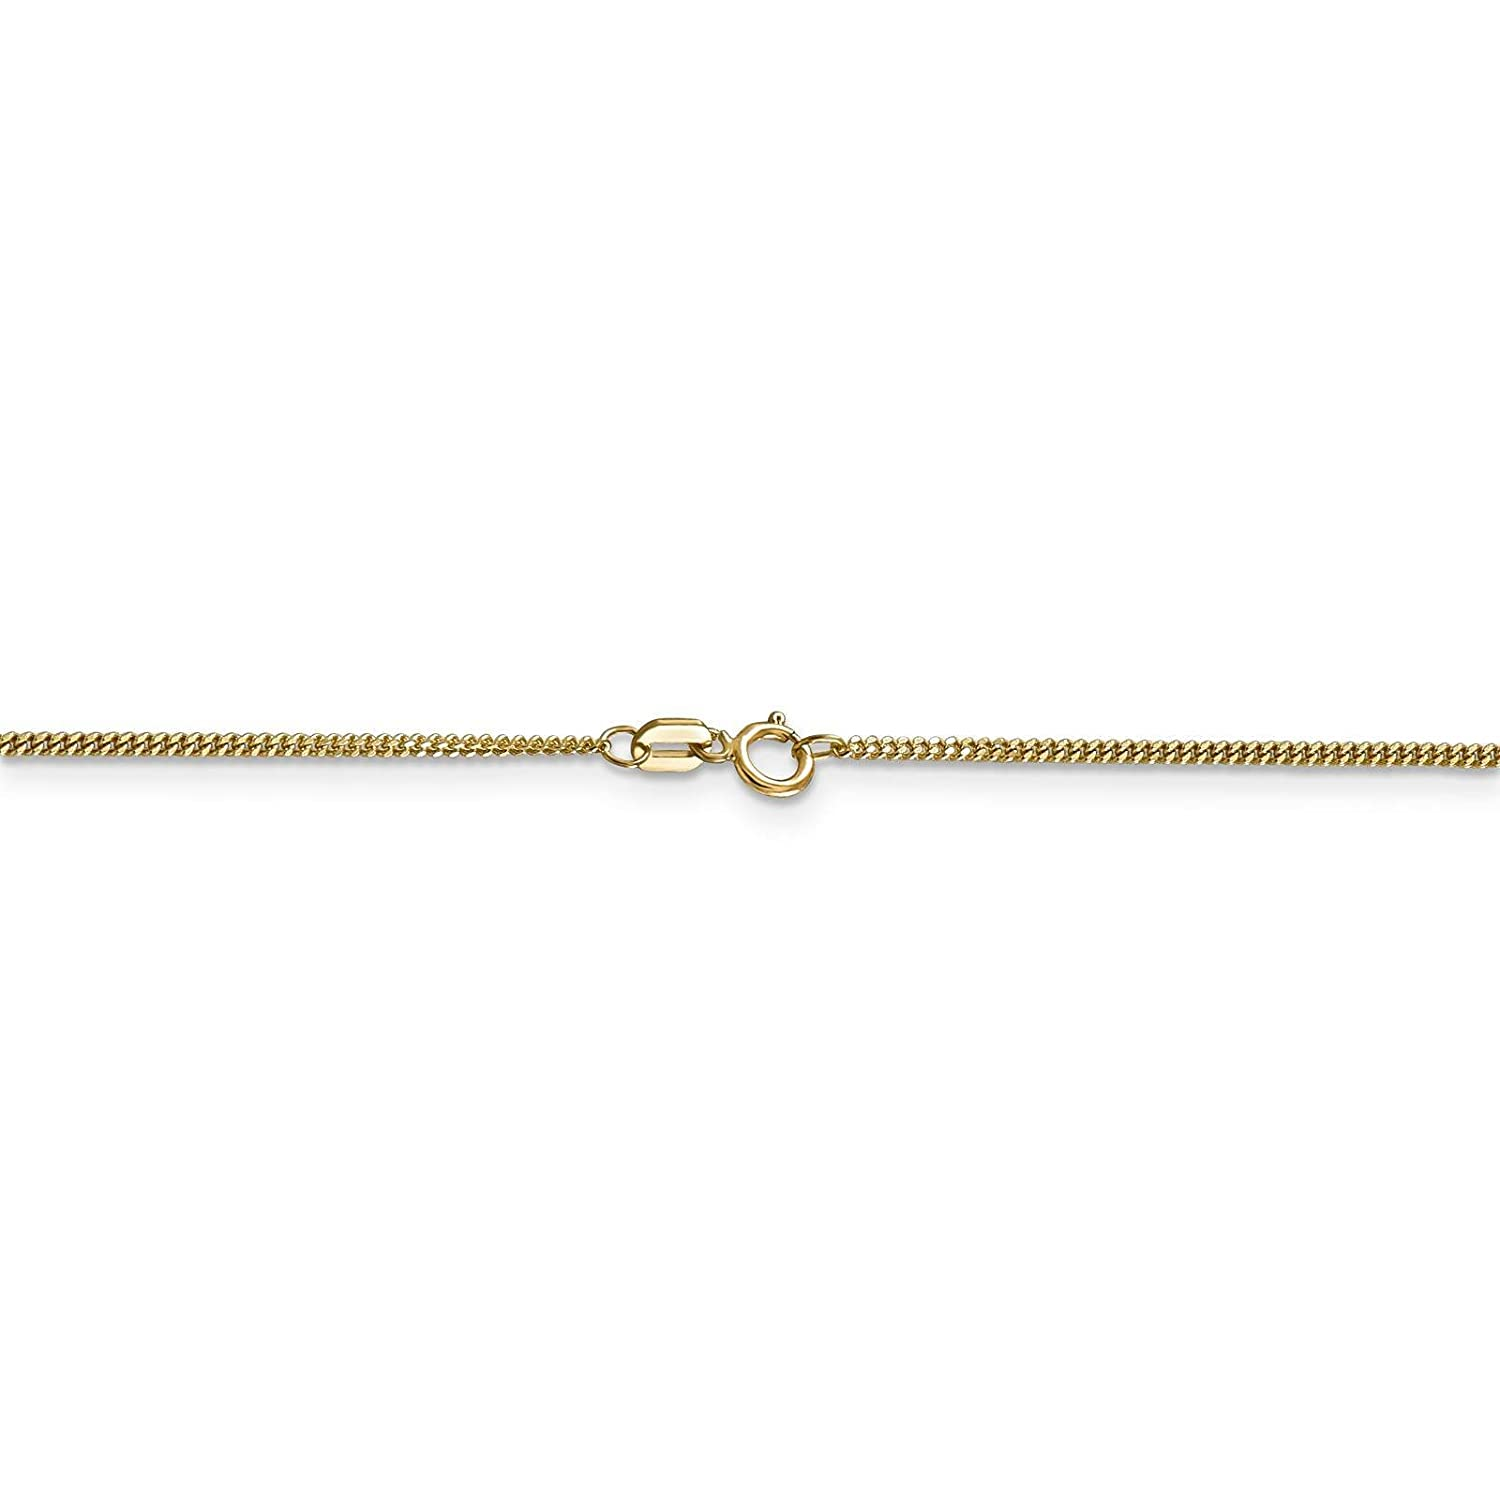 14k Yellow Gold 1.30mm Polished Curb Link Pendant Chain Necklace 16-24